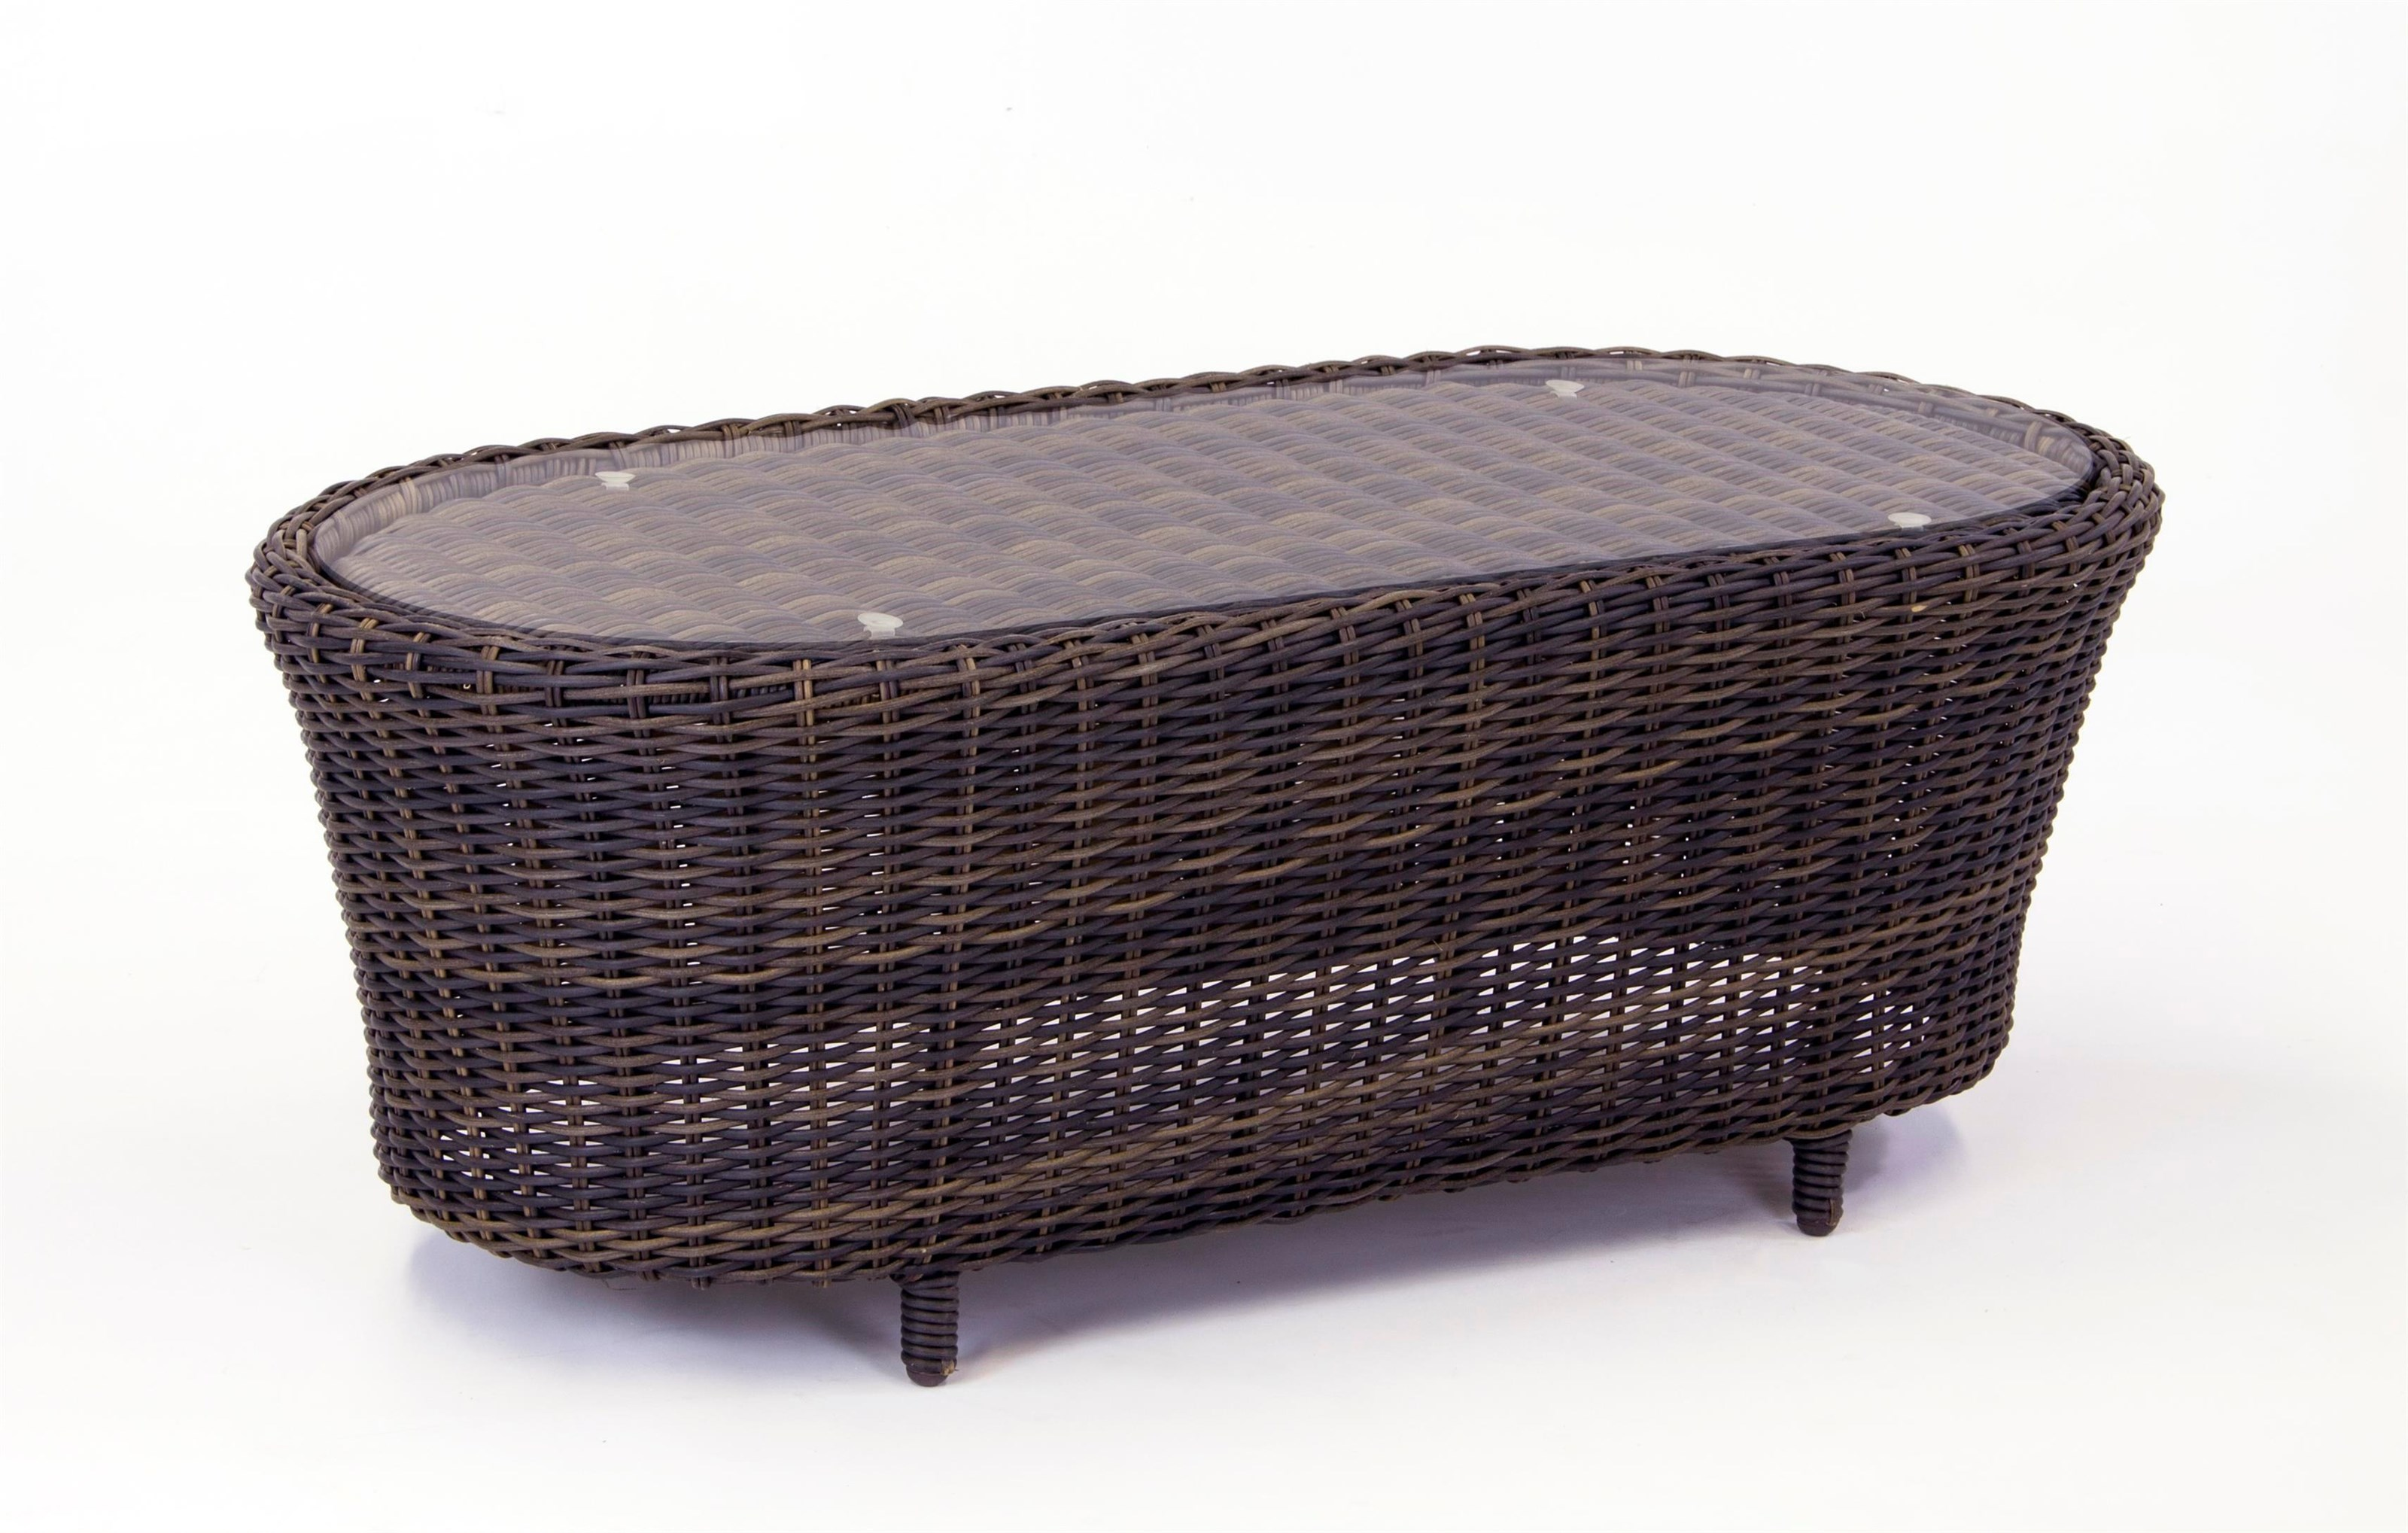 South Sea Rattan & Wicker Barrington Coffee Table - Item Number: 77744